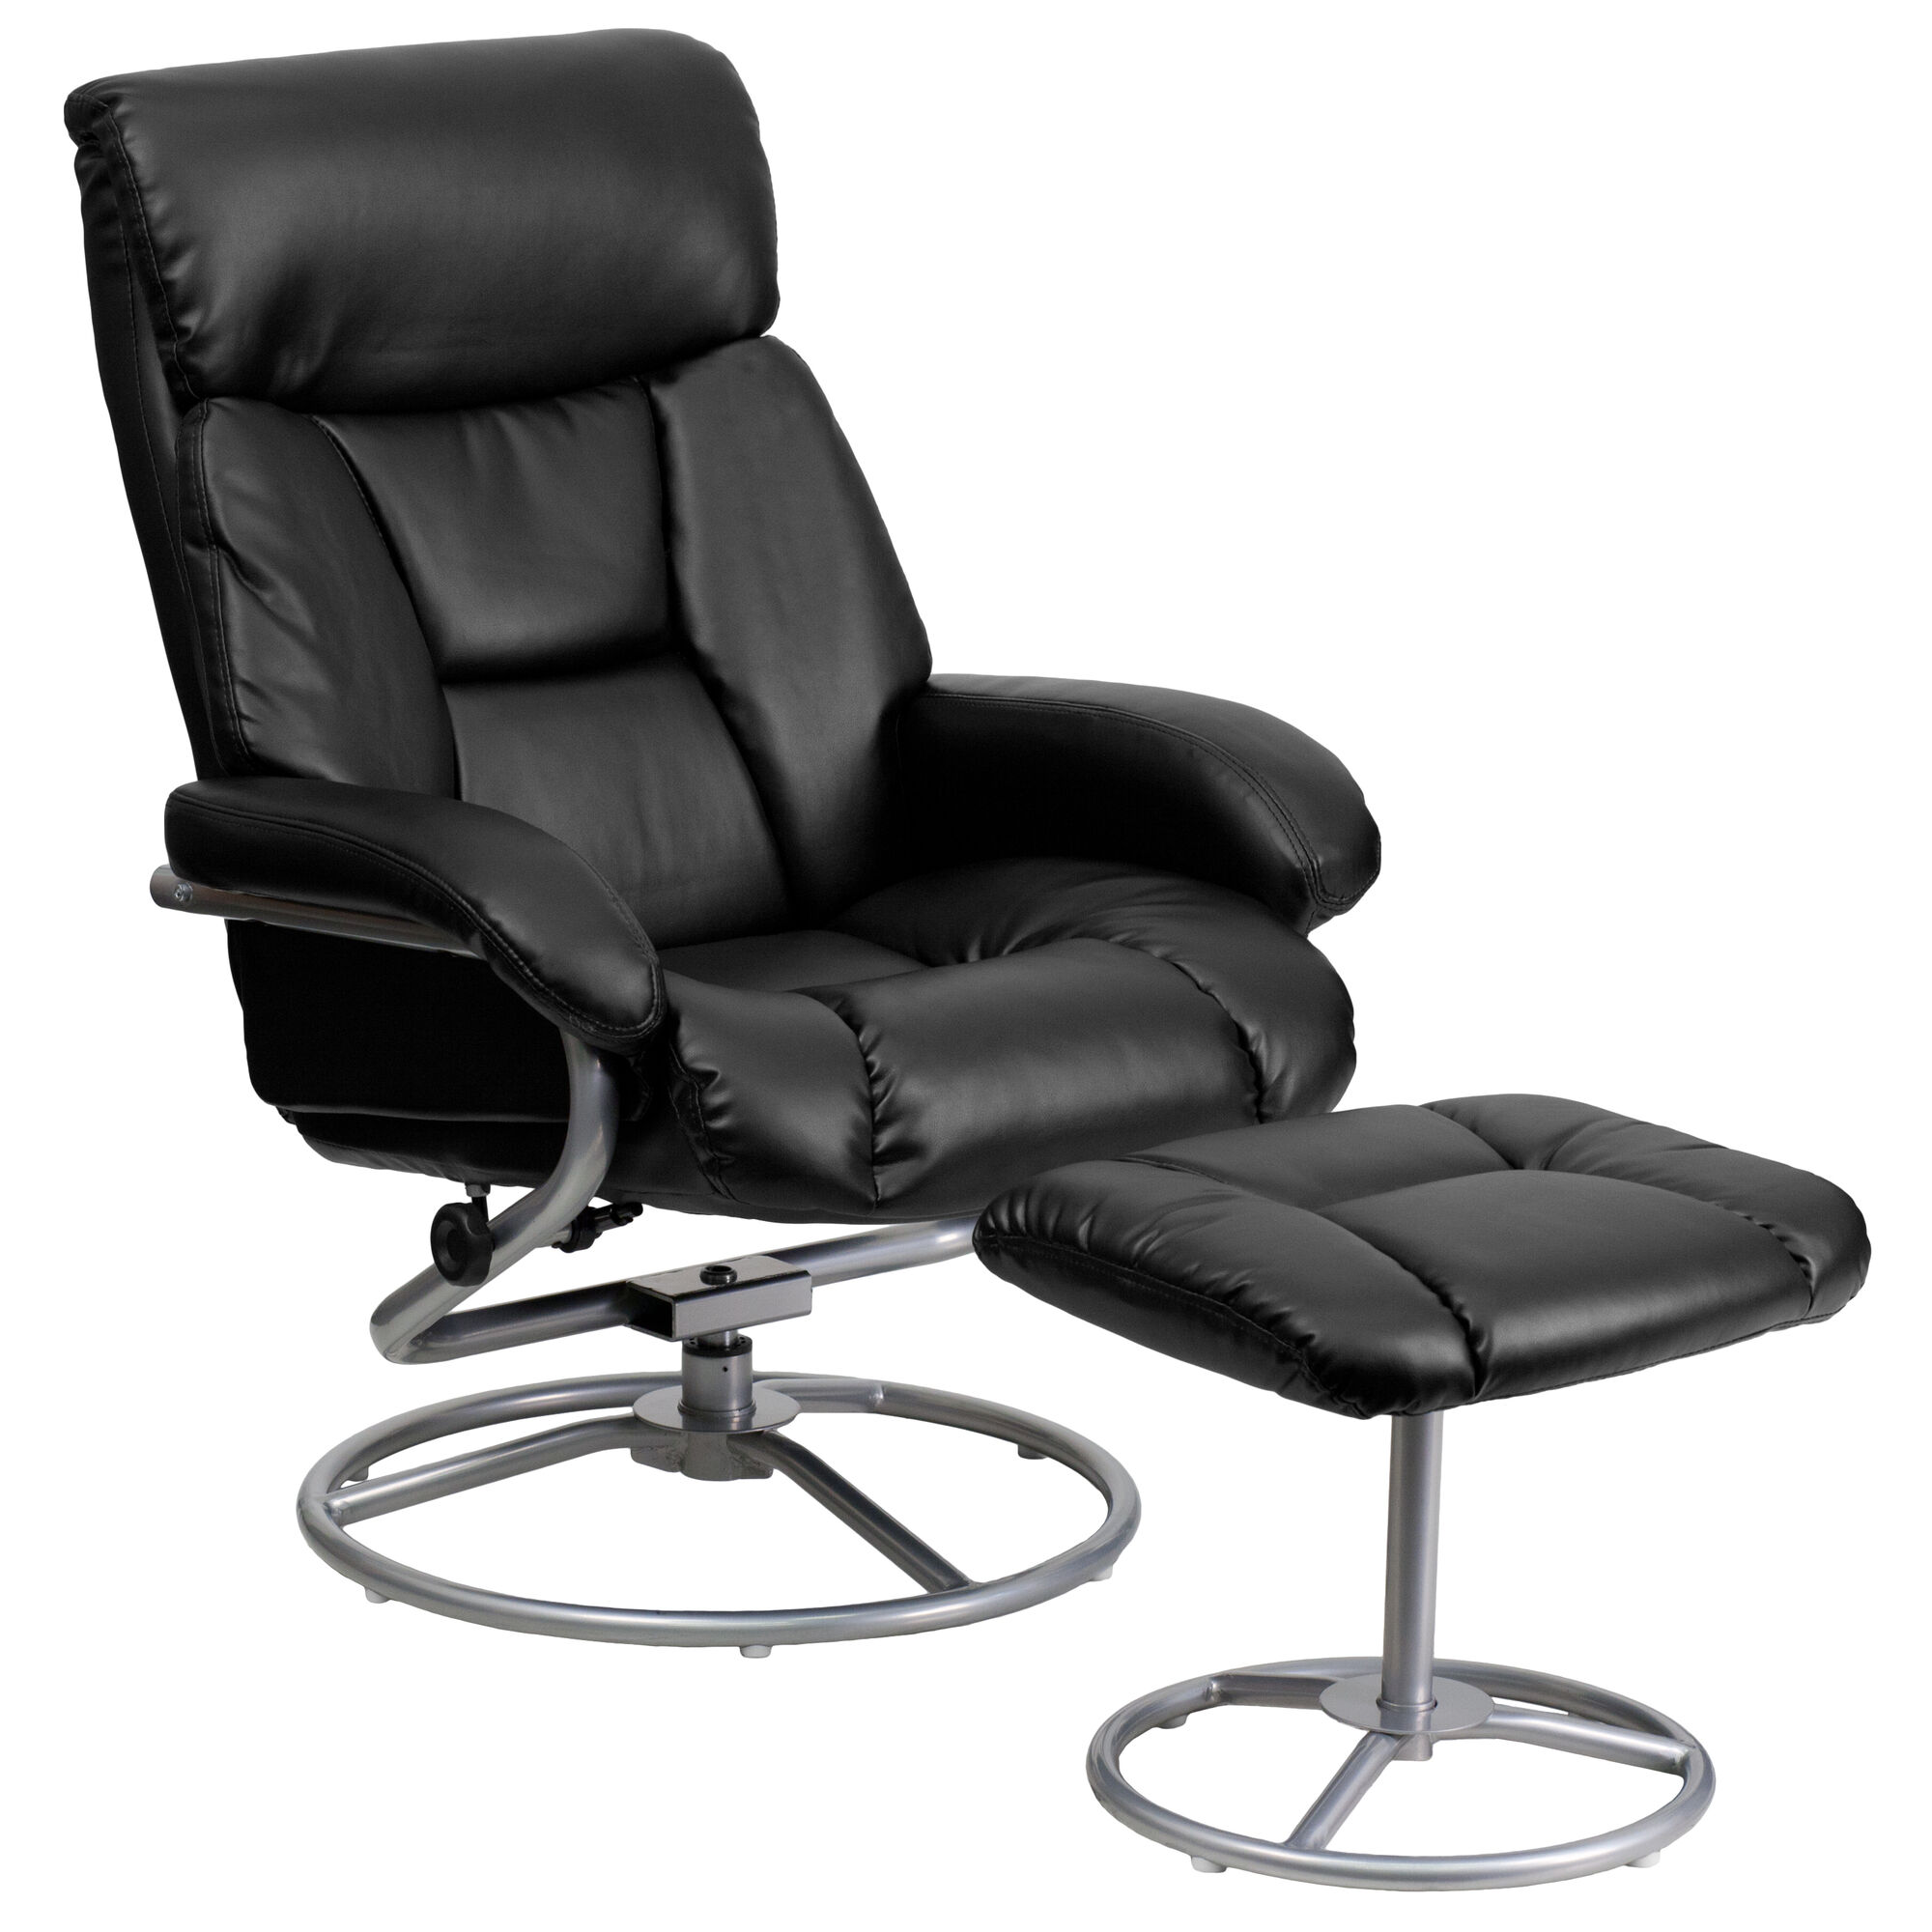 Our Contemporary Multi Position Recliner And Ottoman With